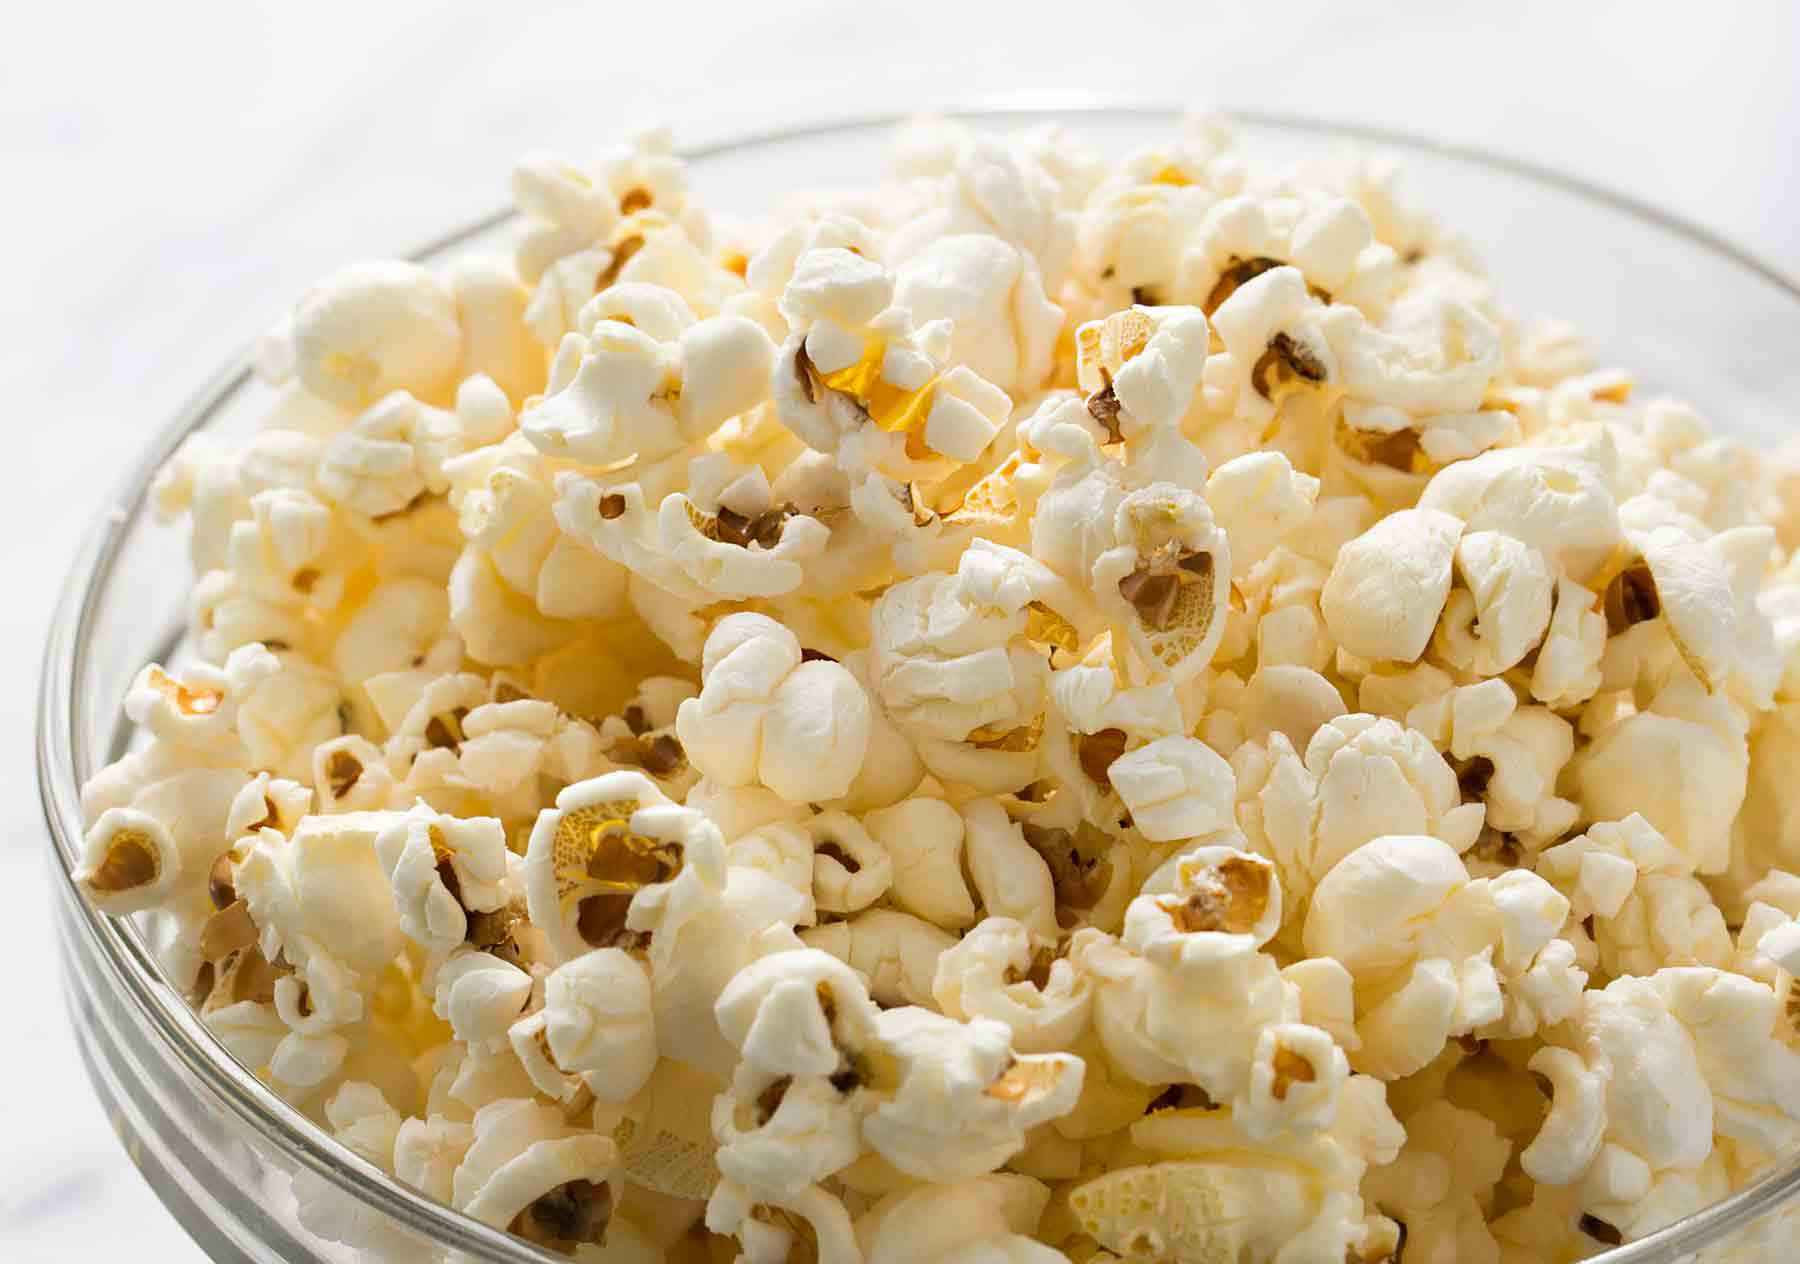 Popcorn-without-oil-health-issue